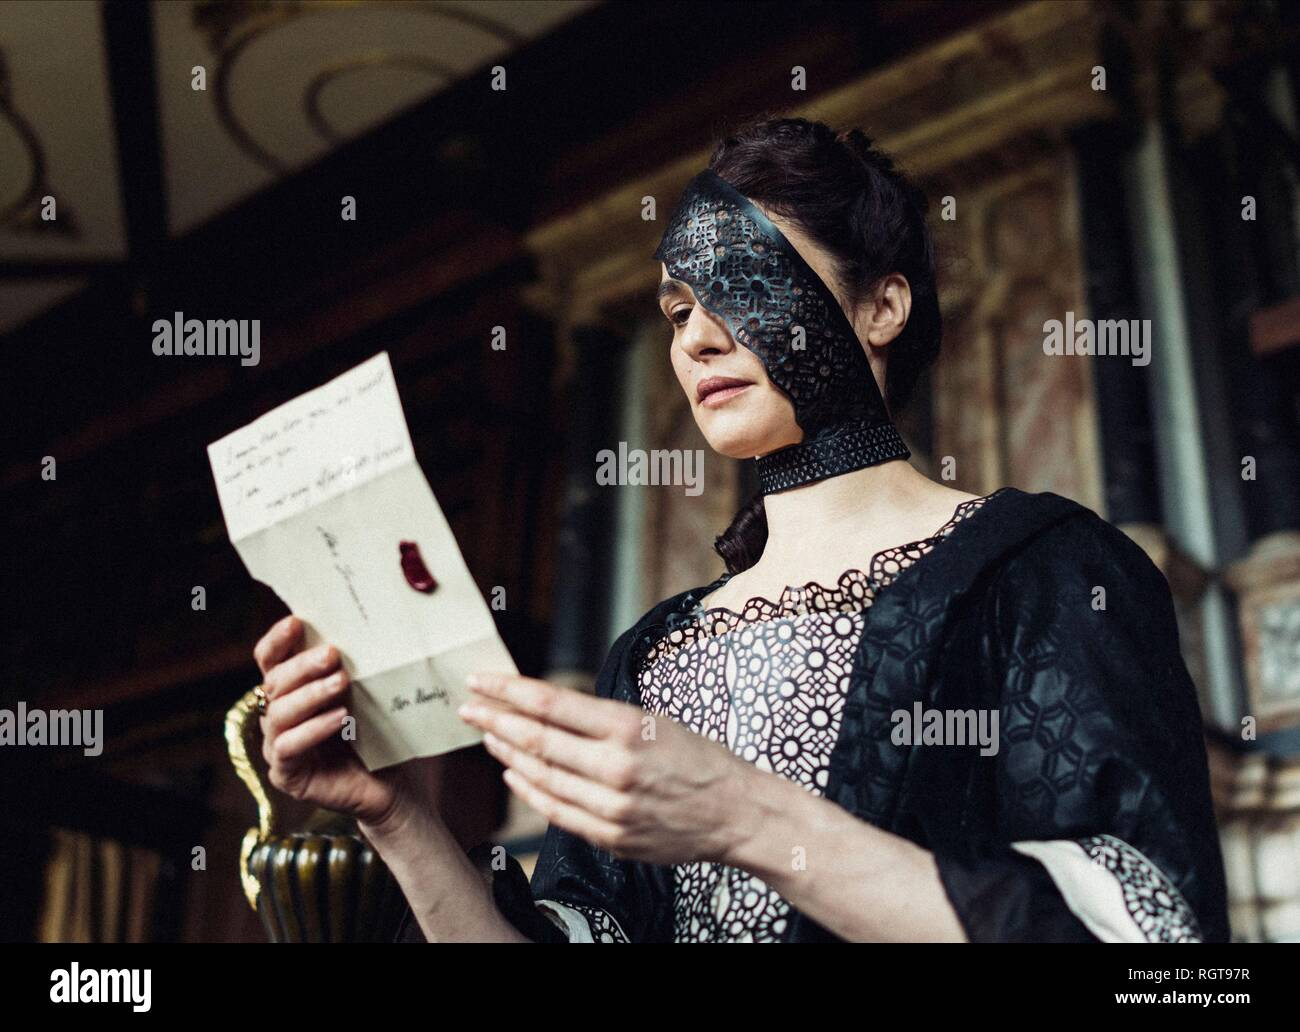 RACHEL WEISZ THE FAVOURITE' (2018) - Stock Image